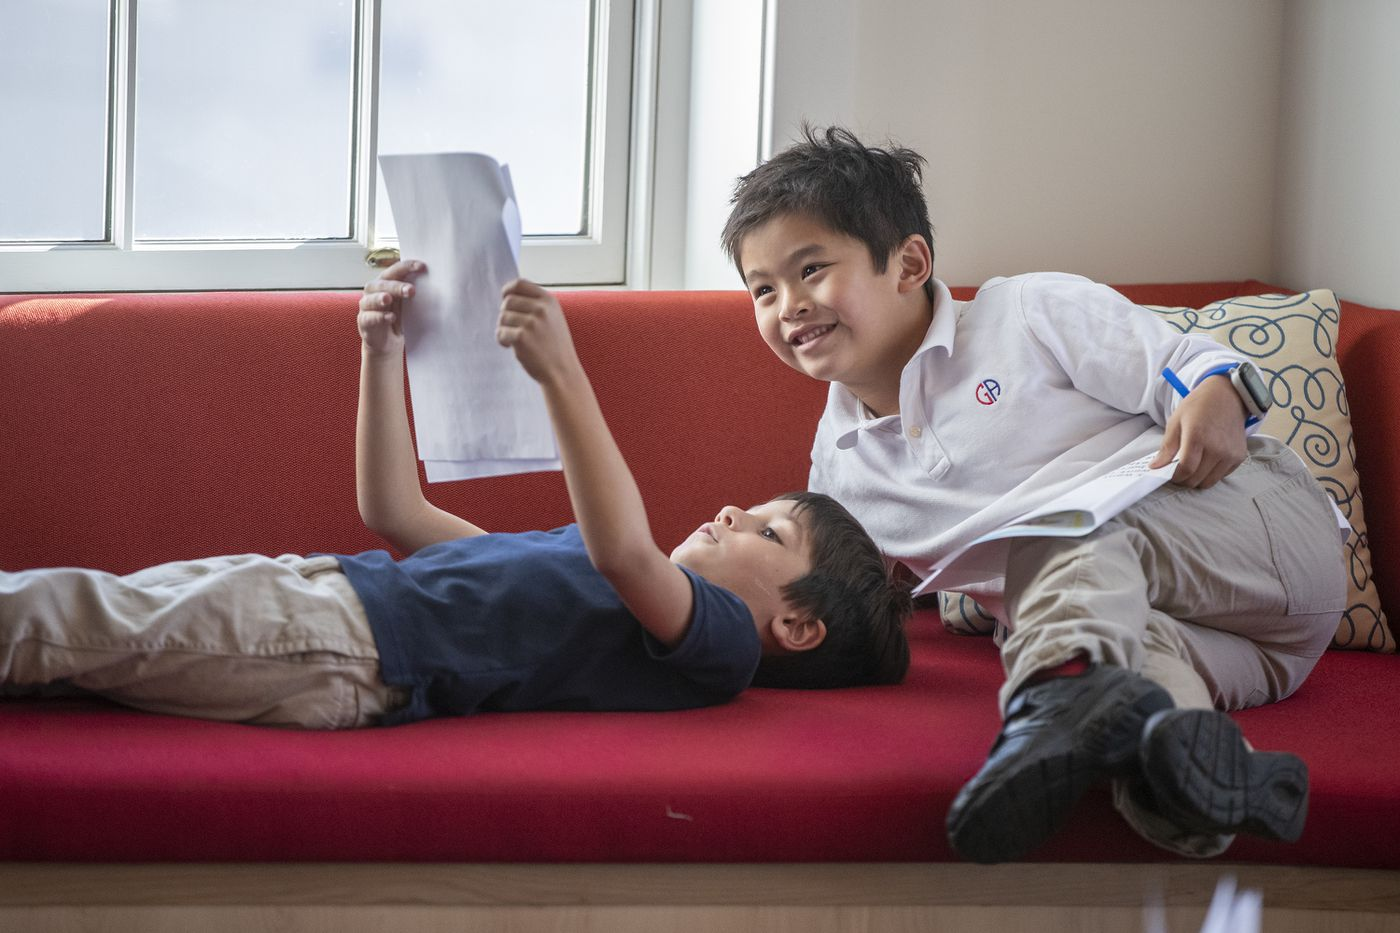 Alexander Paone, left, and Paul Bui, both 6, look over Alexander's report, in the Writers' Cafe area of the new Germantown Academy library and learning commons. The New York-based architecture firm that designed it incorporated elements from students' designs.